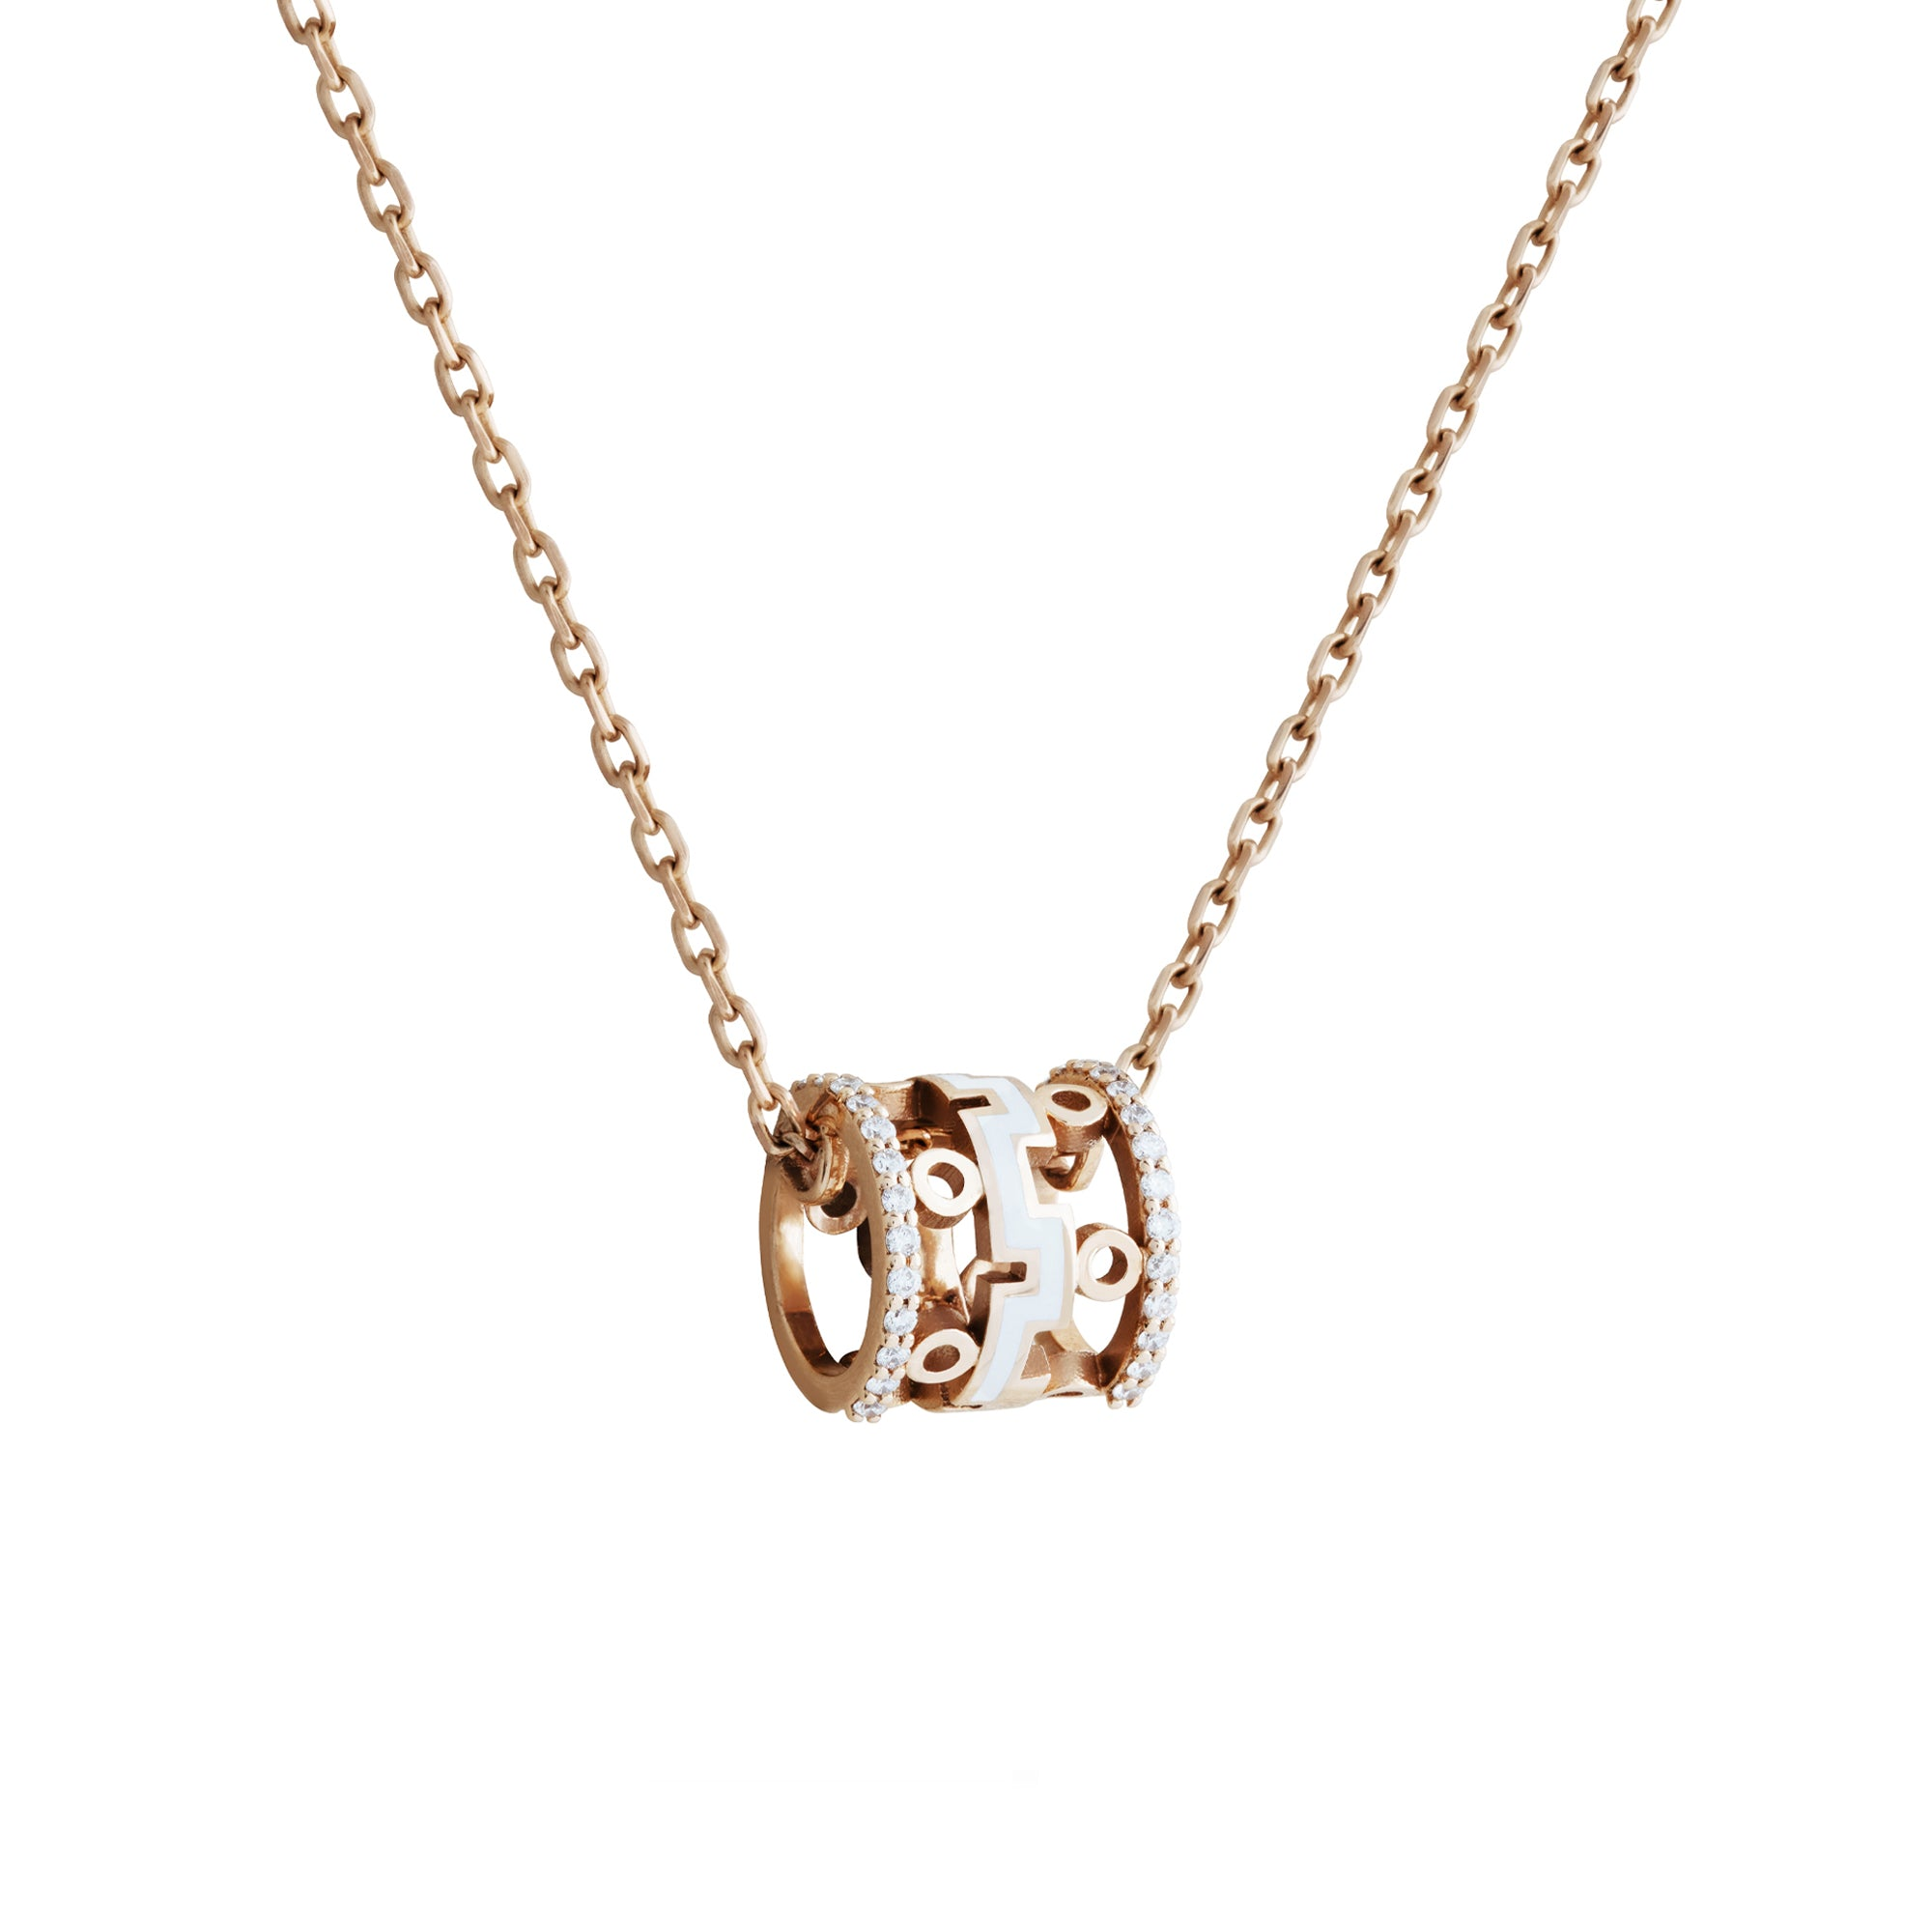 Dedalo 2020 Rose Gold Necklace With Diamonds And White Ceramic